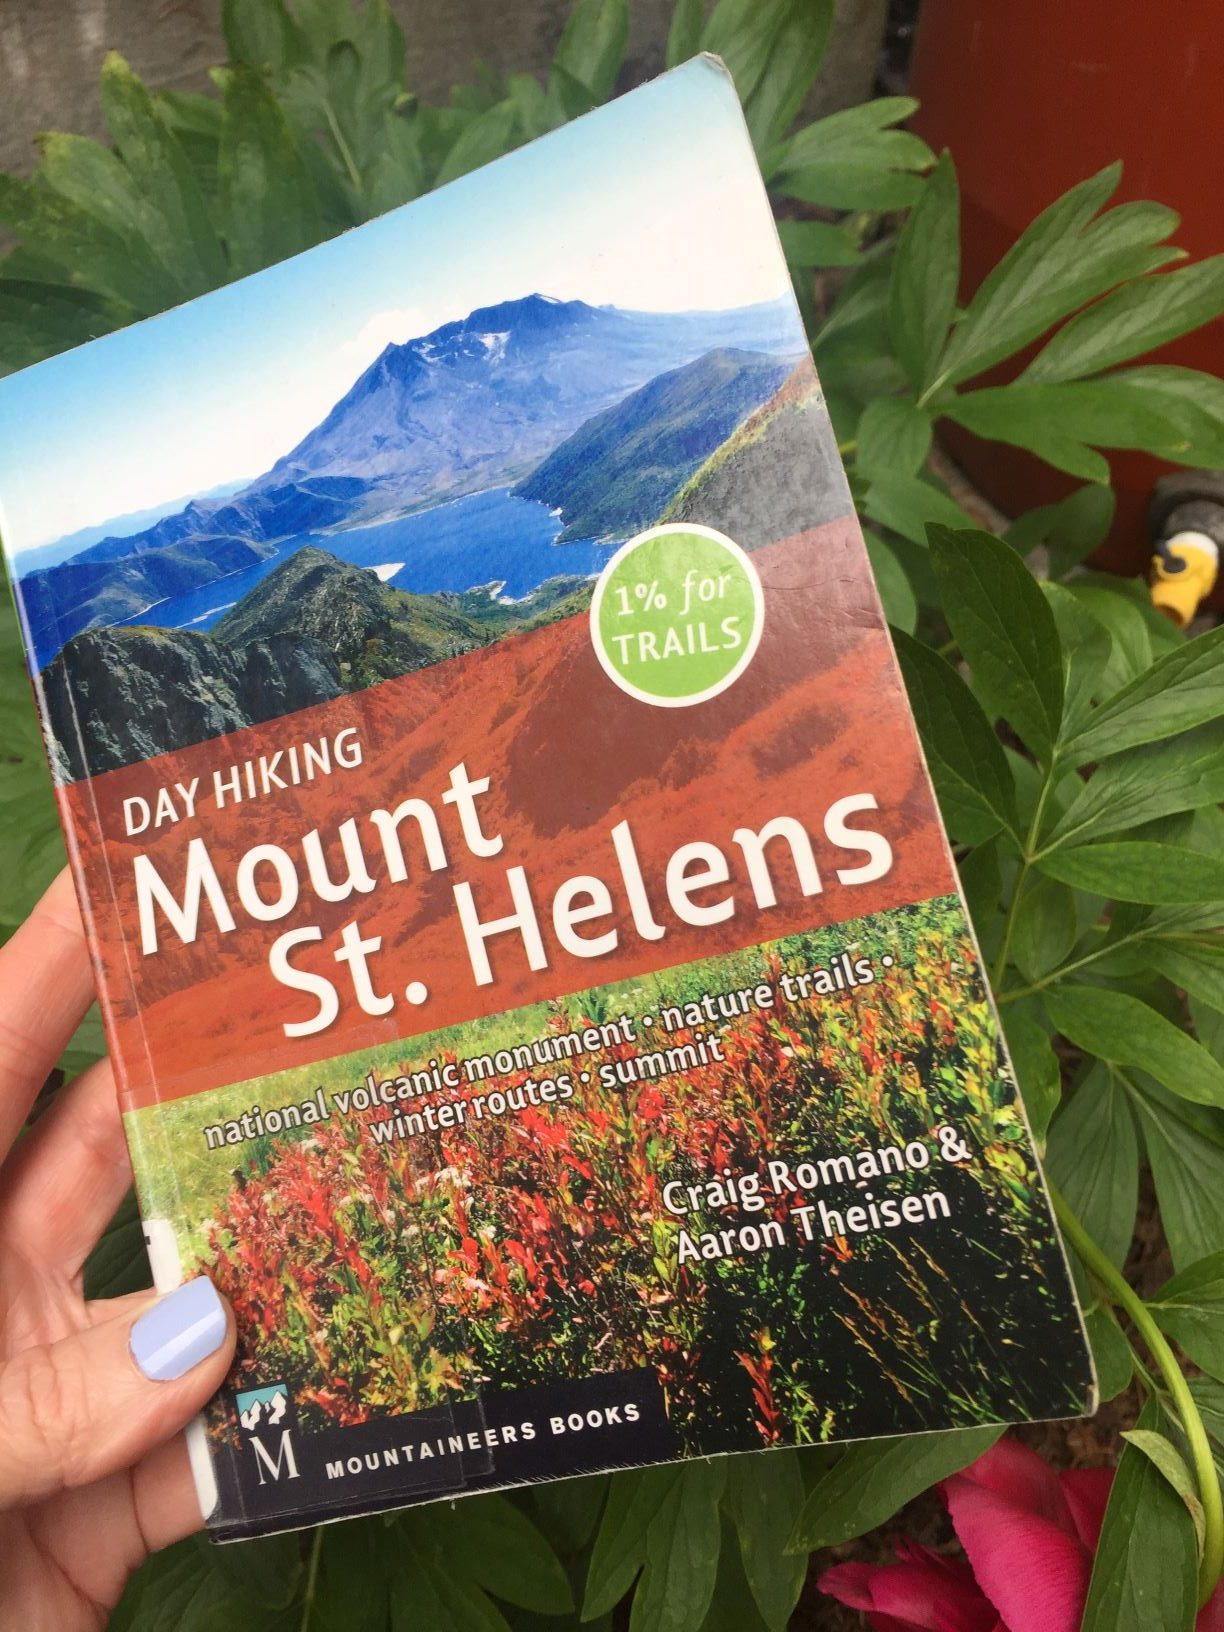 Find Cool Geology at Mount St. Helens